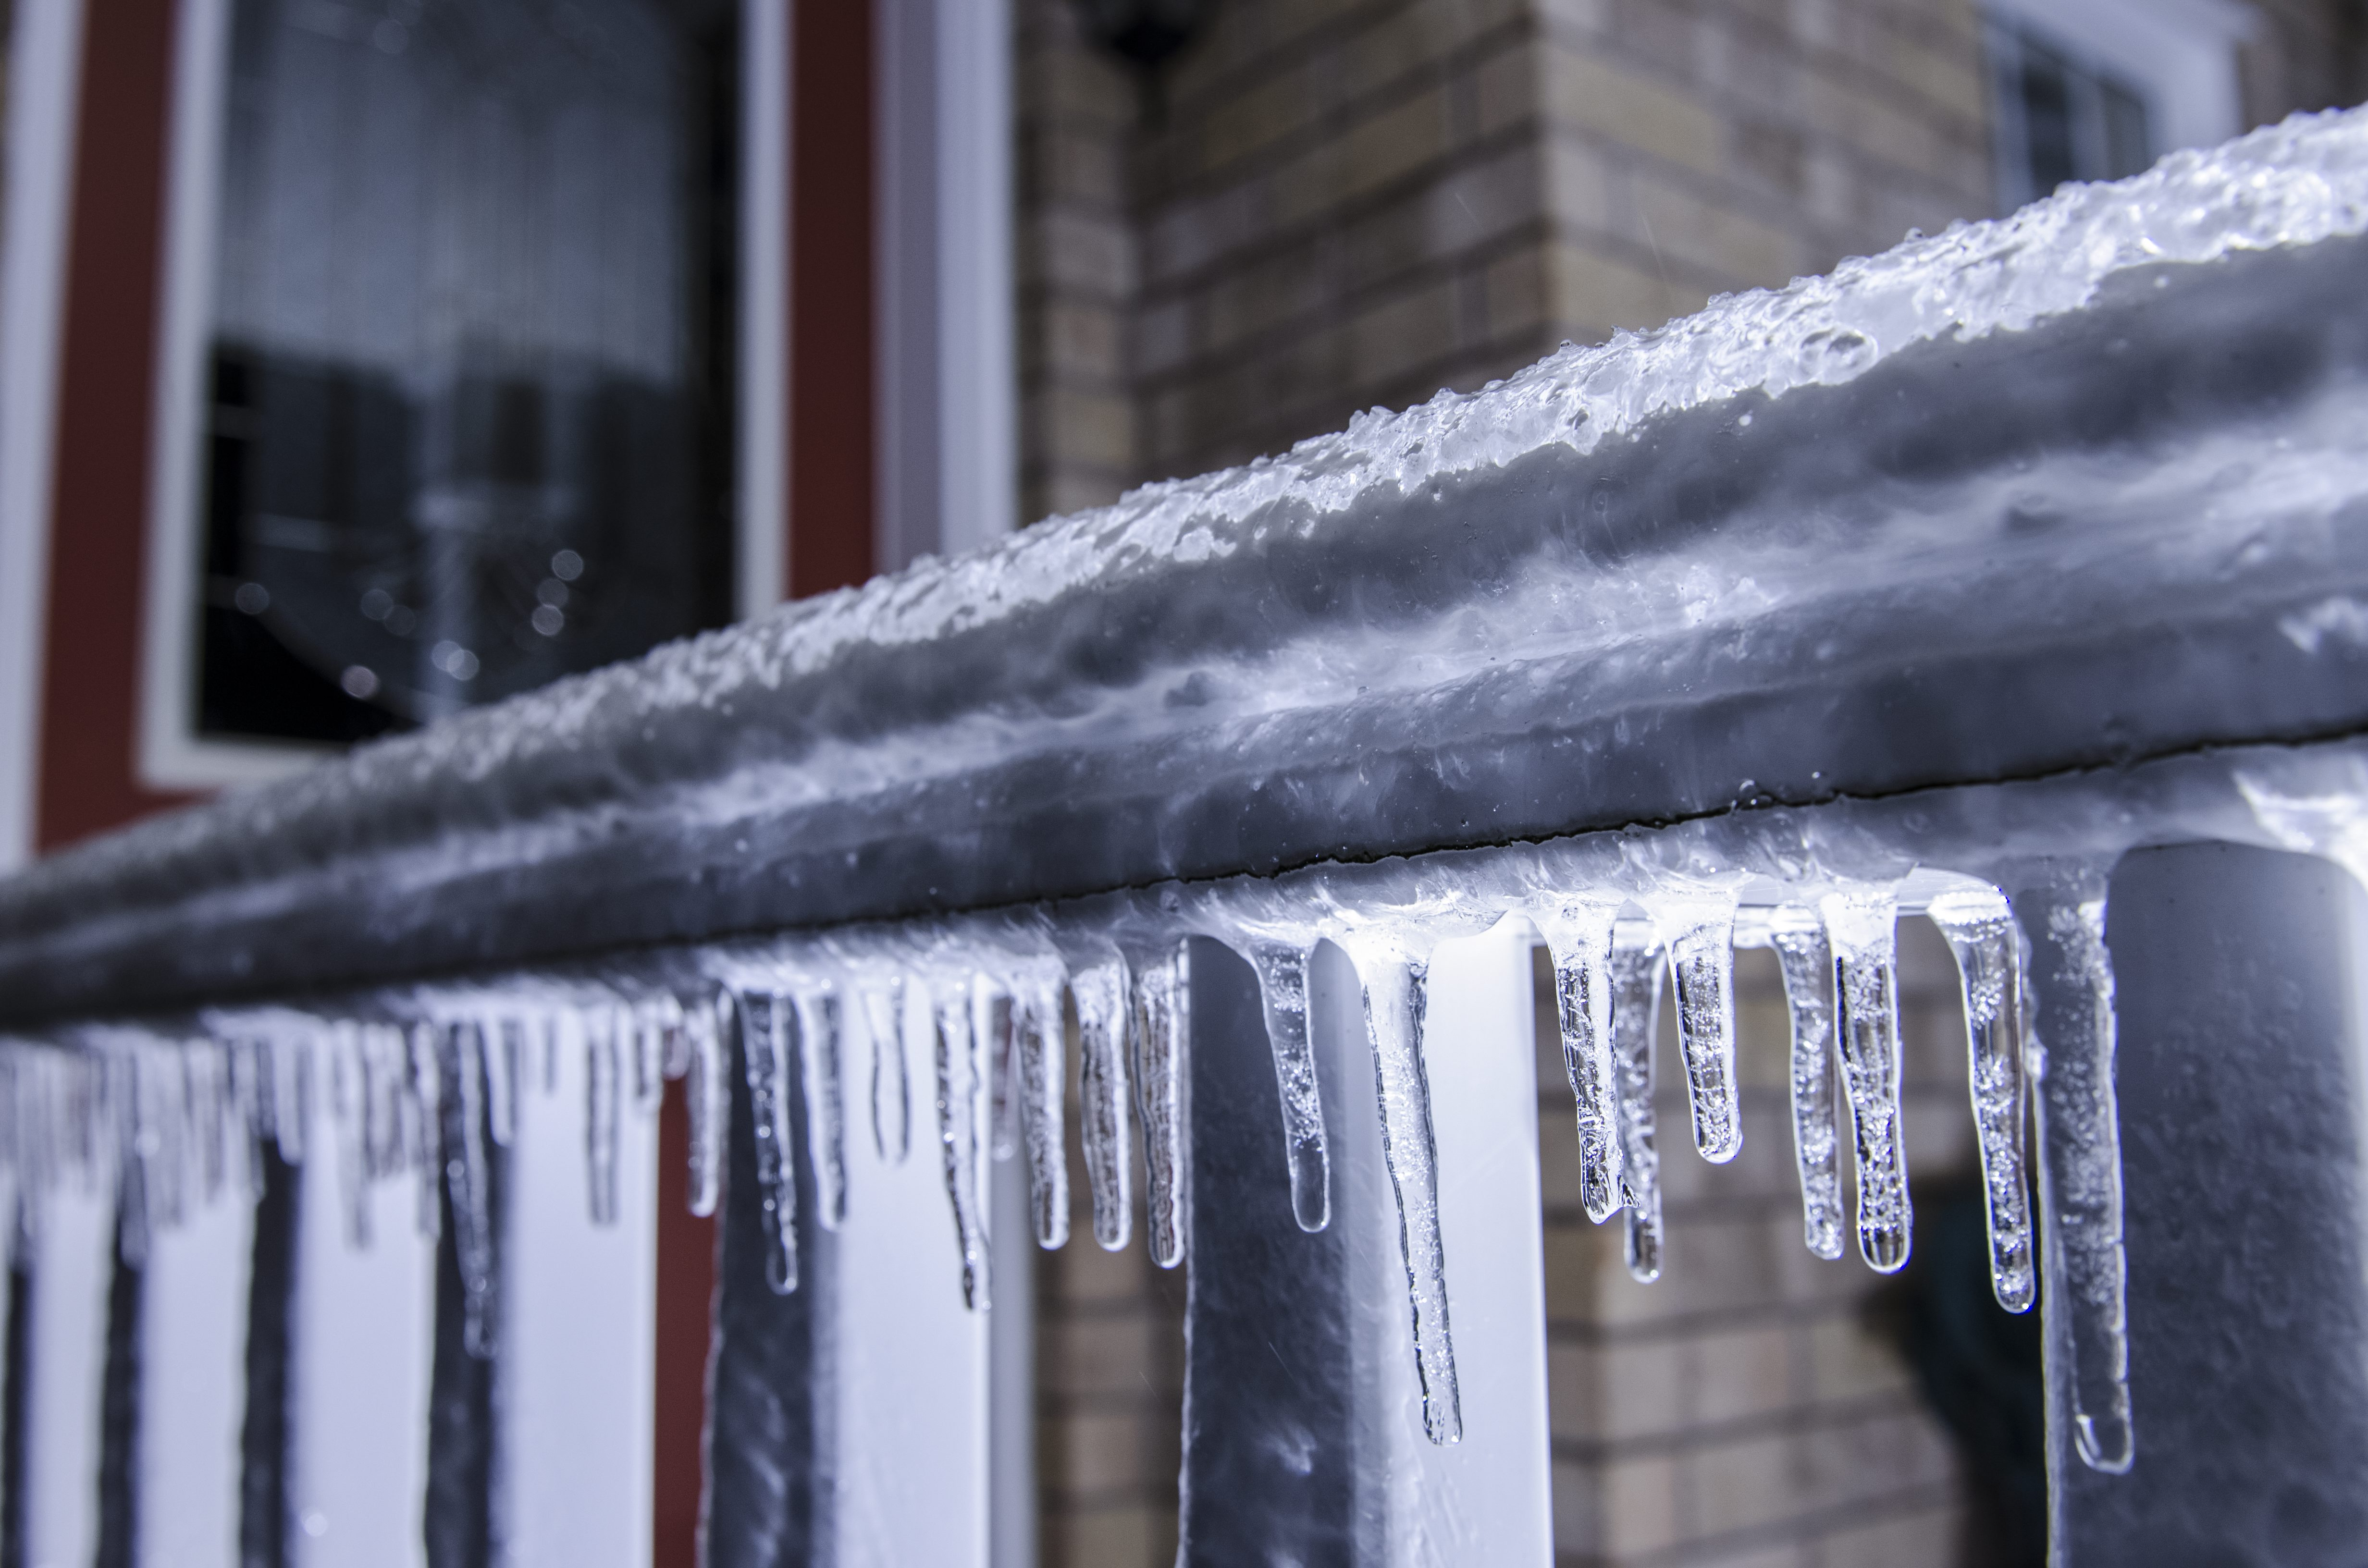 Special weather alert in effect with freezing rain set to hit region